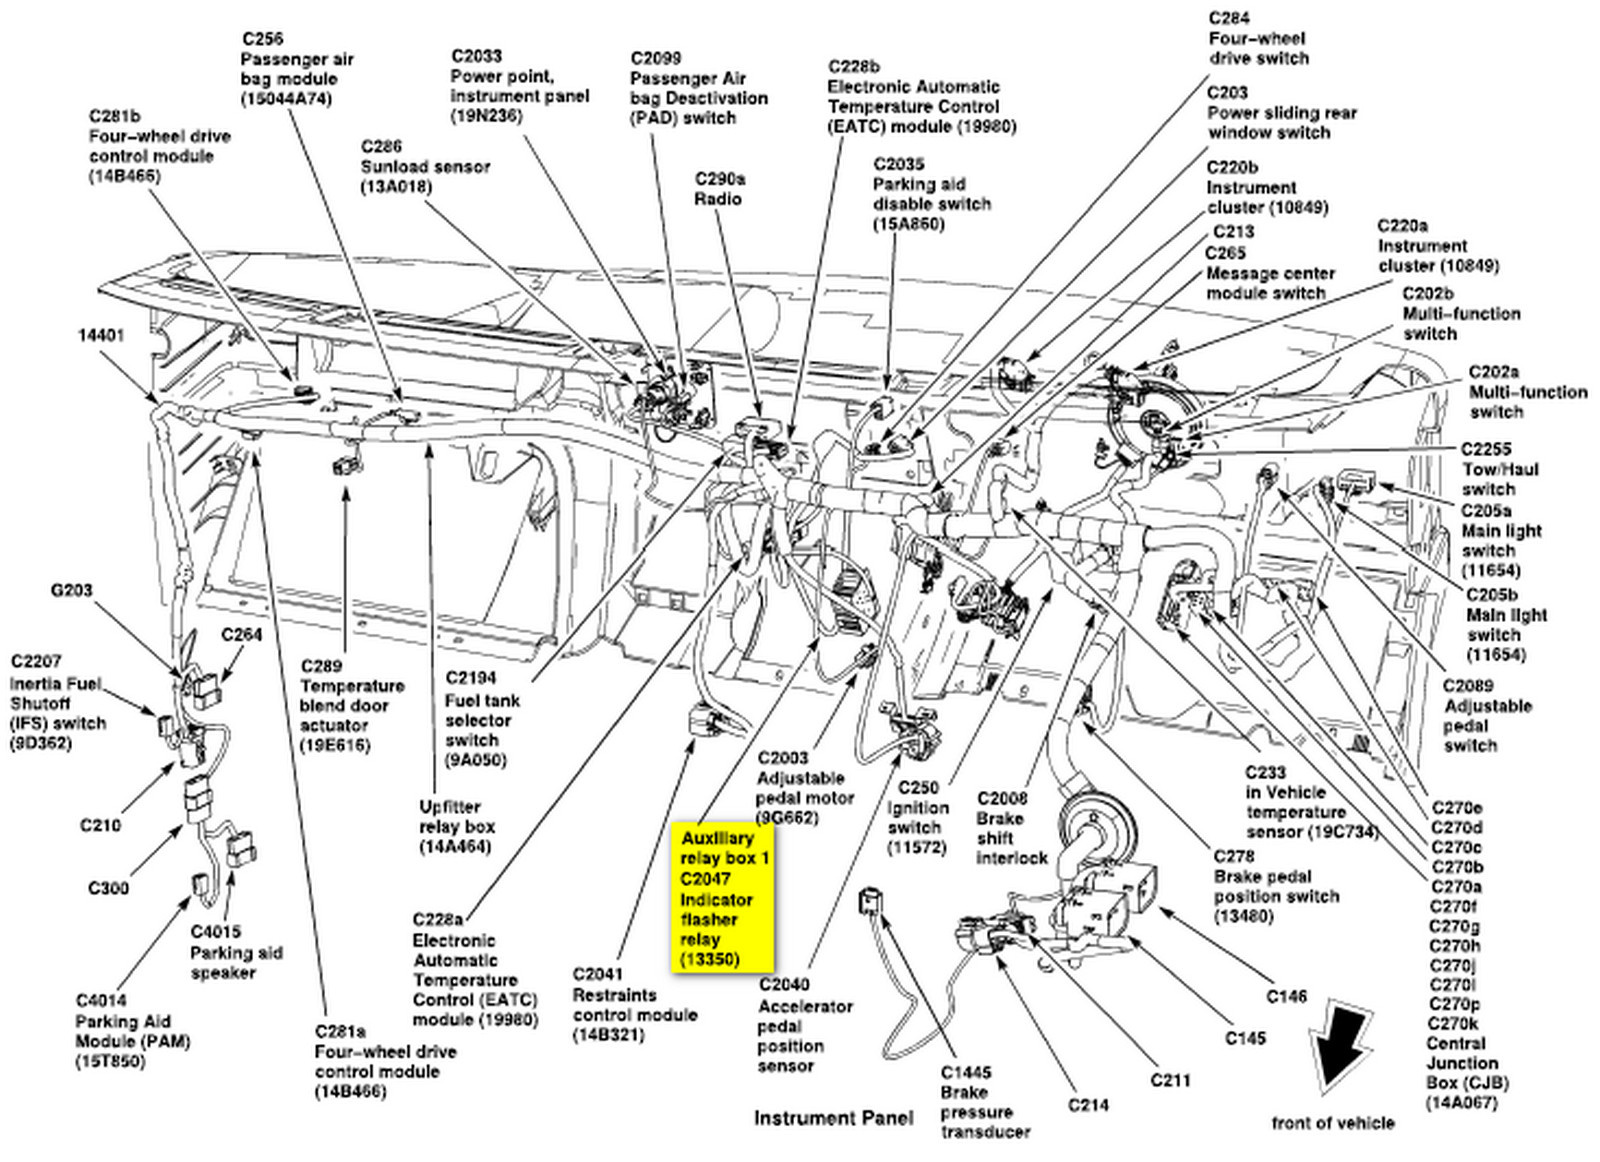 2004 ford f150 blend door actuator location